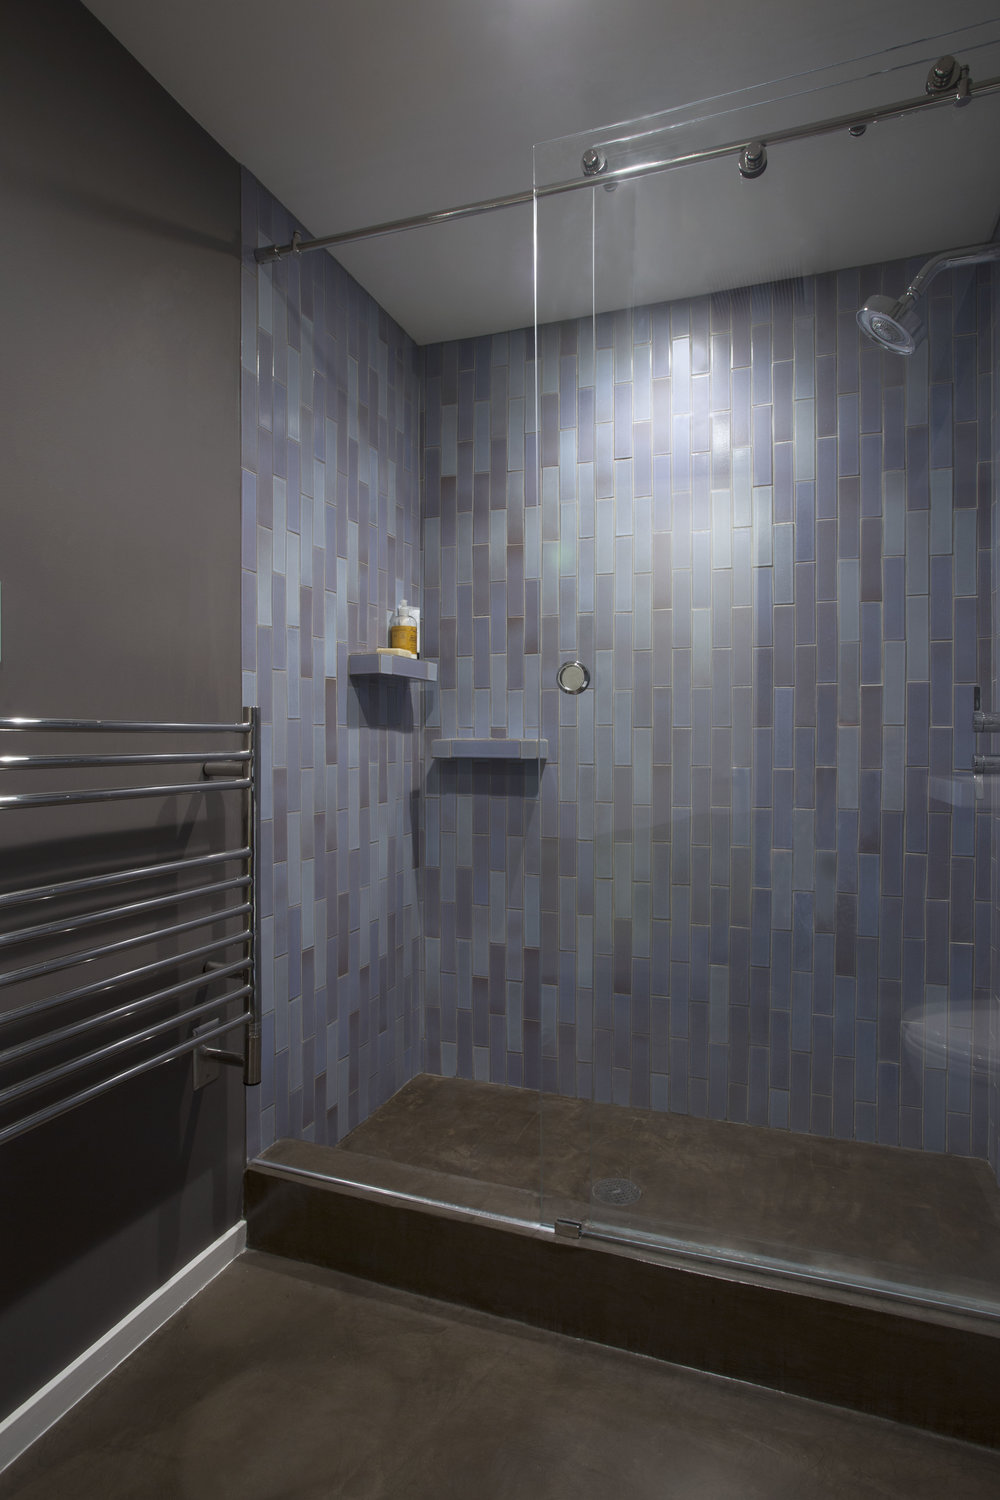 Waterfall cascade design using  Heath Ceramics  tiles for the upstairs bathroom.